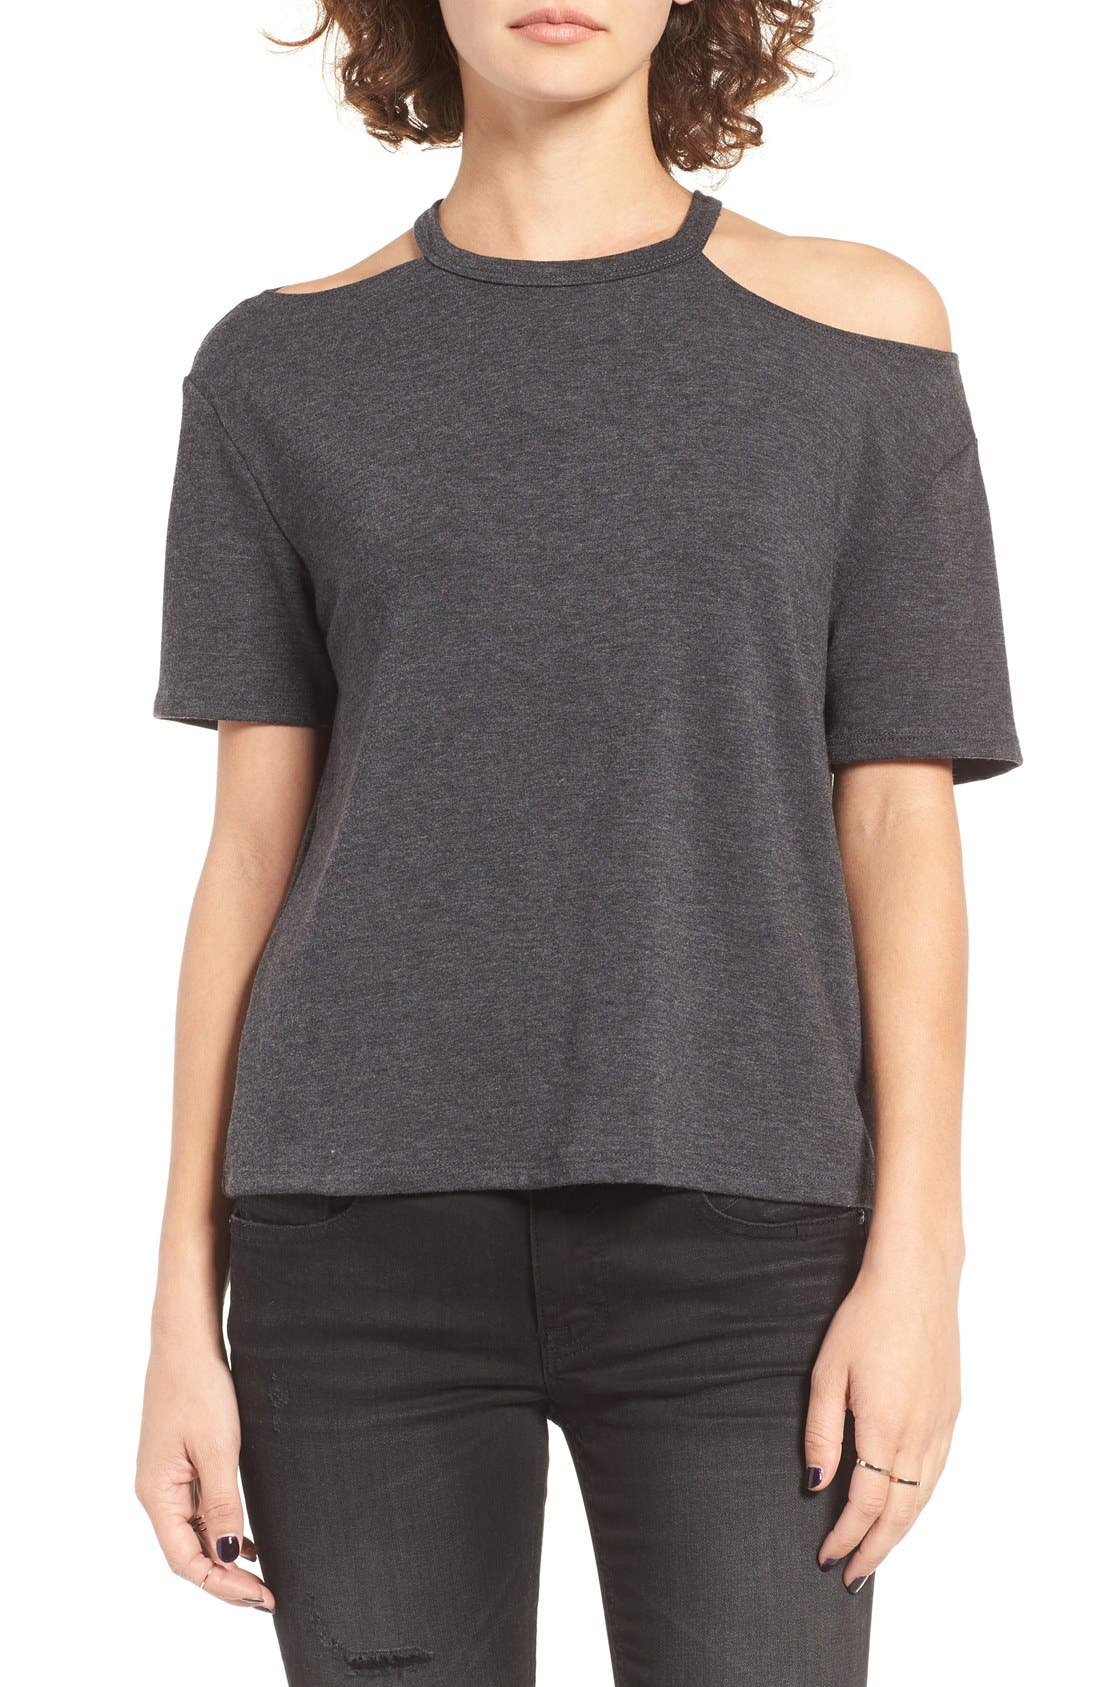 Alternate Image 1 Selected - Michelle by Comune Fairfield Cold Shoulder Tee